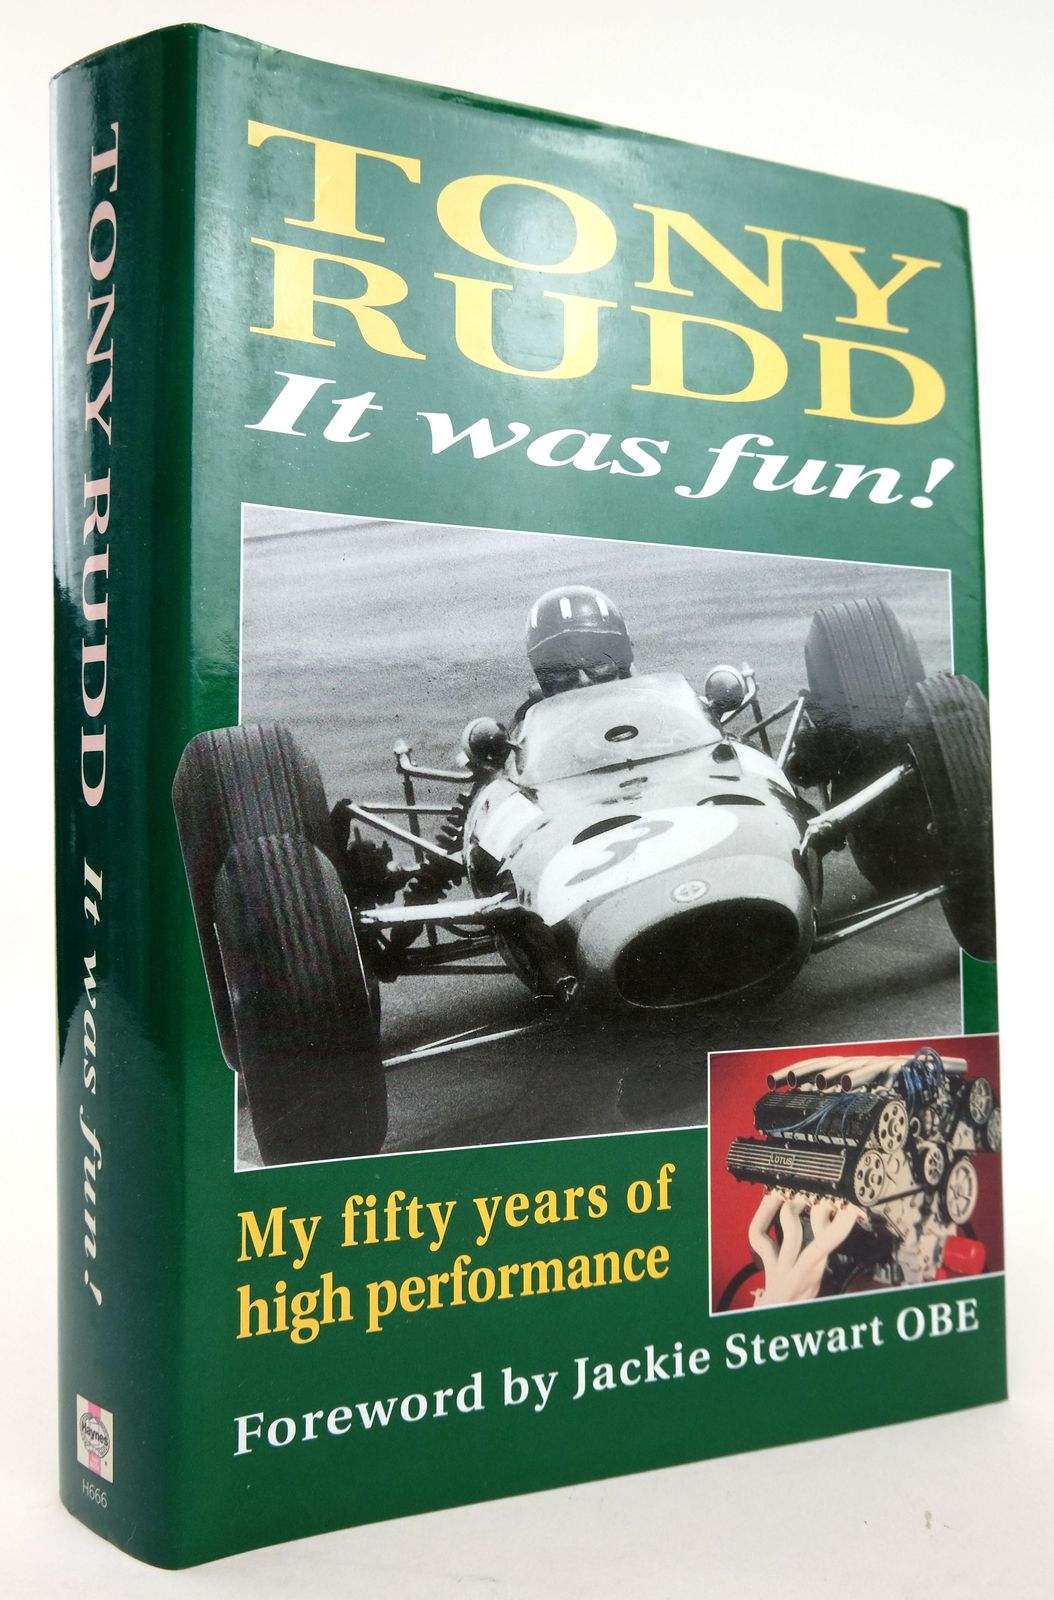 Photo of IT WAS FUN! MY FIFTY YEARS OF HIGH PERFORMANCE written by Rudd, Tony published by Haynes Publishing (STOCK CODE: 1820136)  for sale by Stella & Rose's Books